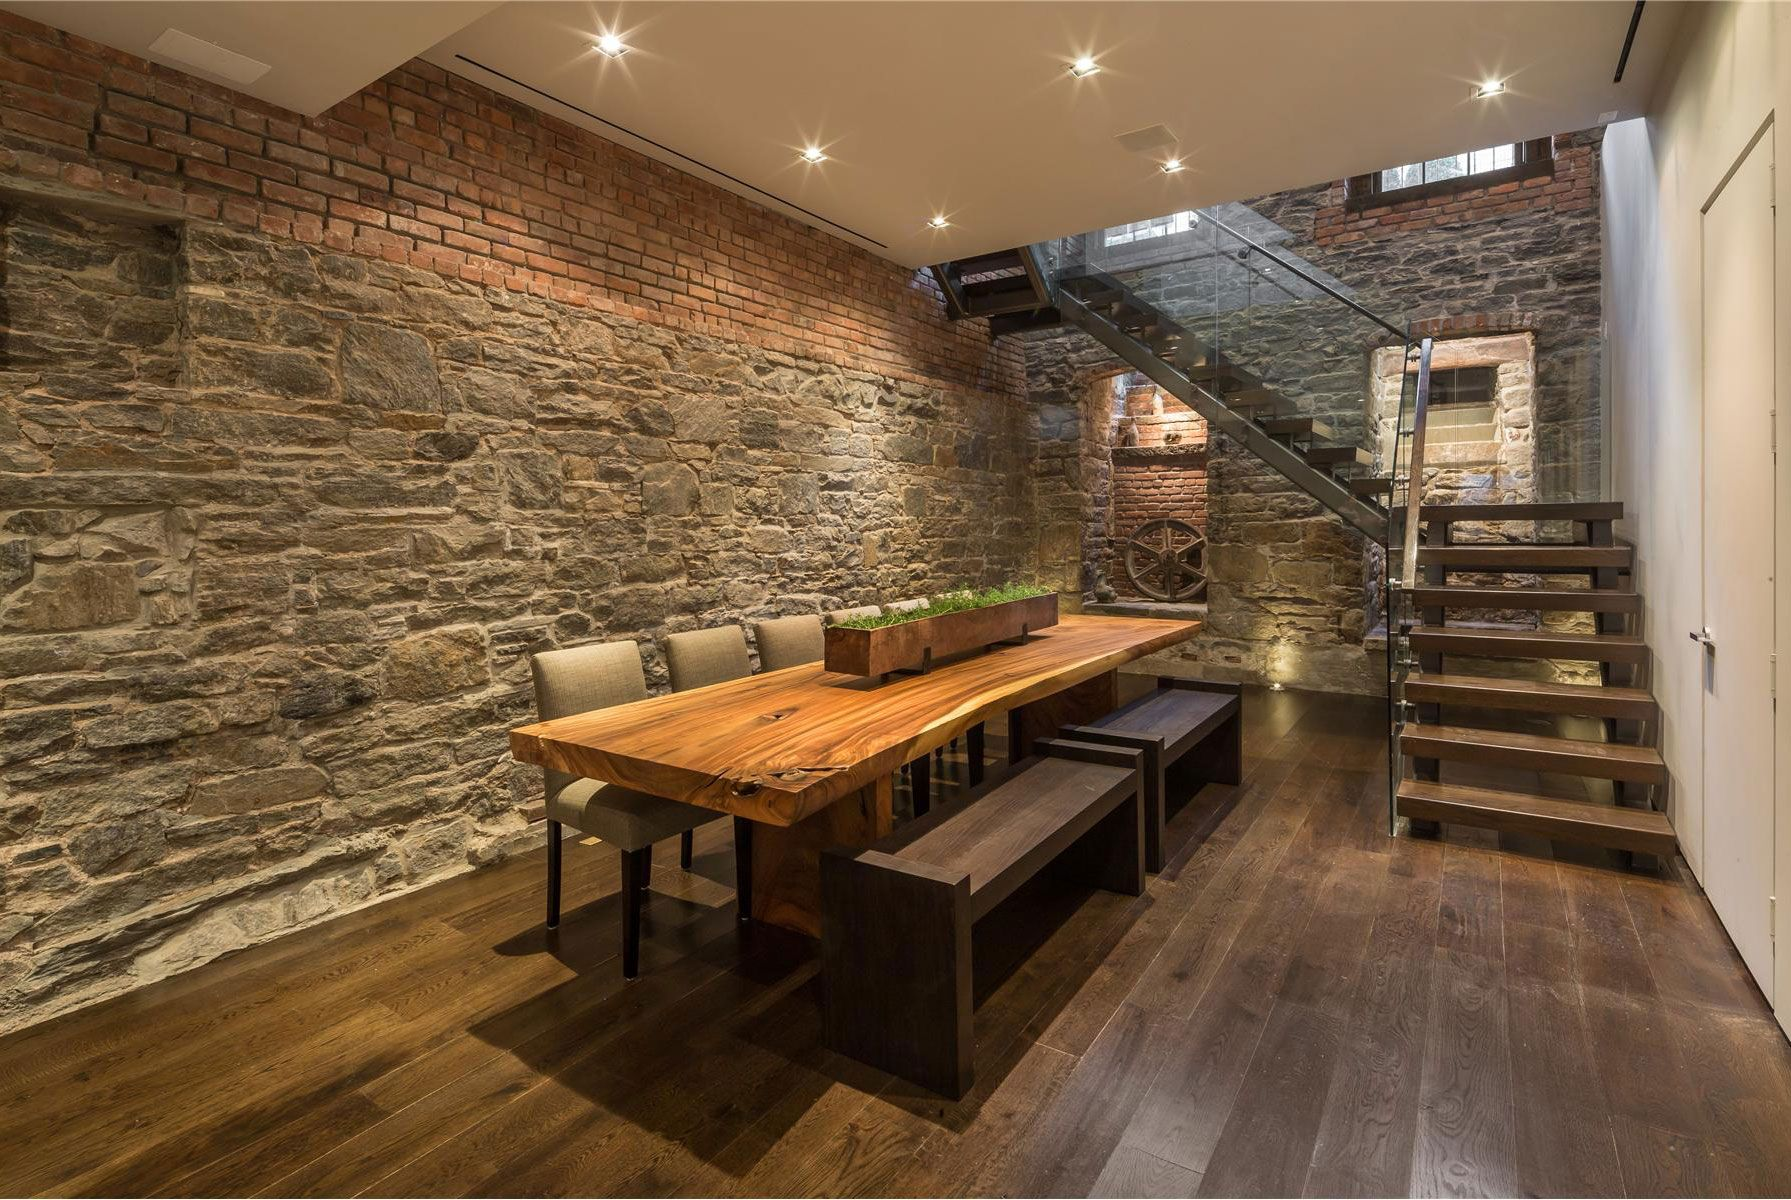 InteriorRustic Feel For Interior Brick Wall Ideas Spectacular With Natural Wooden Poker Dining Table And Flooring Feat Nice